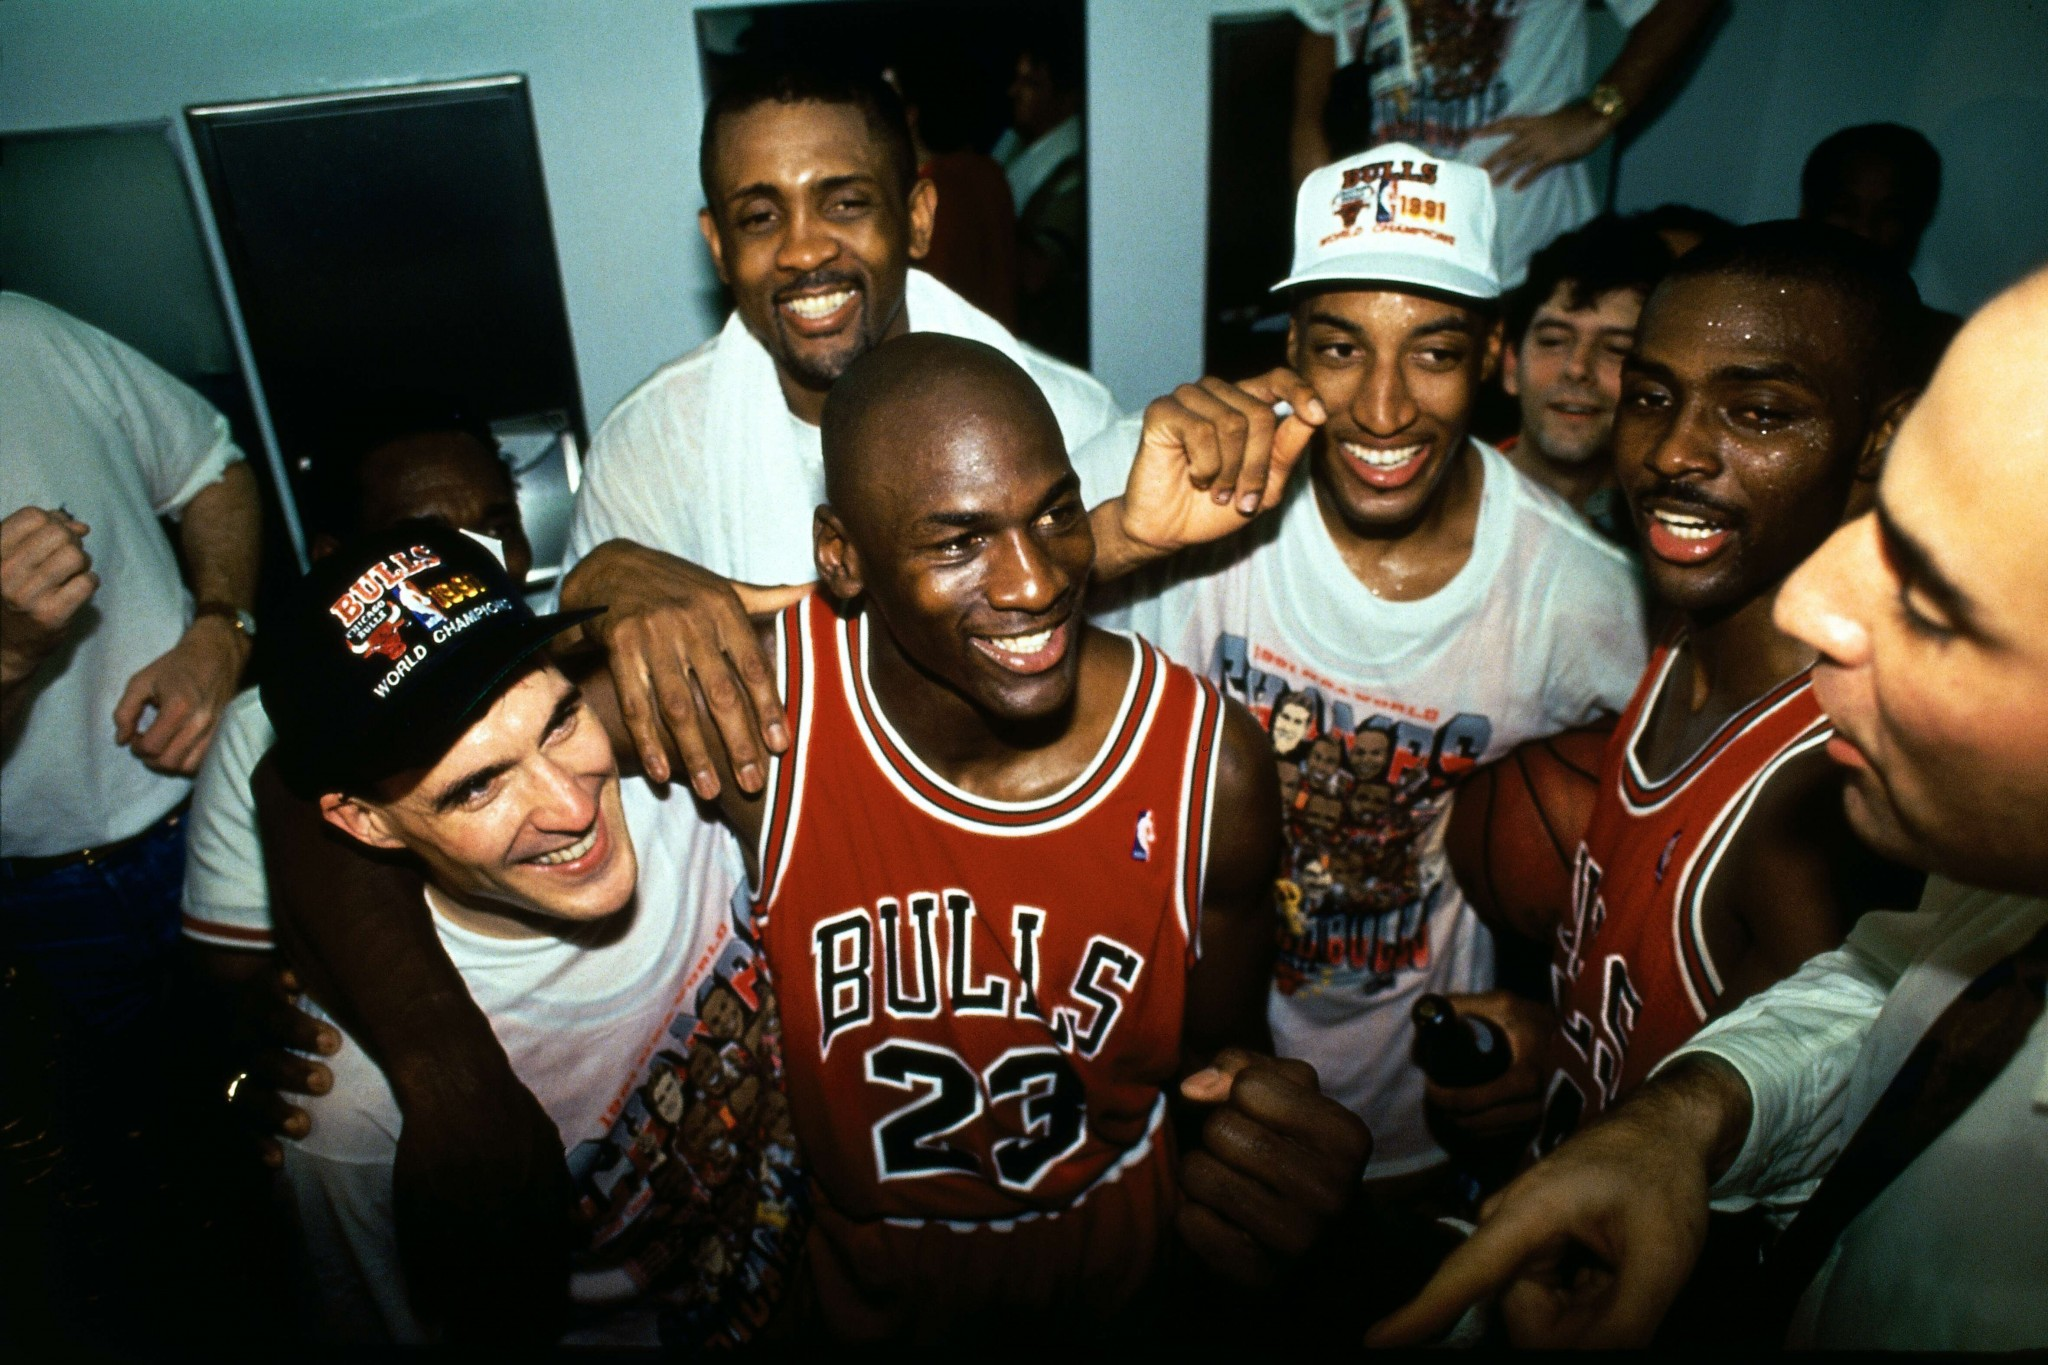 1991-06-12 - Gm 5 v LAL - 1991 NBA Finals - Locker Room Celebration - MJ-Pax-Cartwright (NBAE Andrew Bernstein)